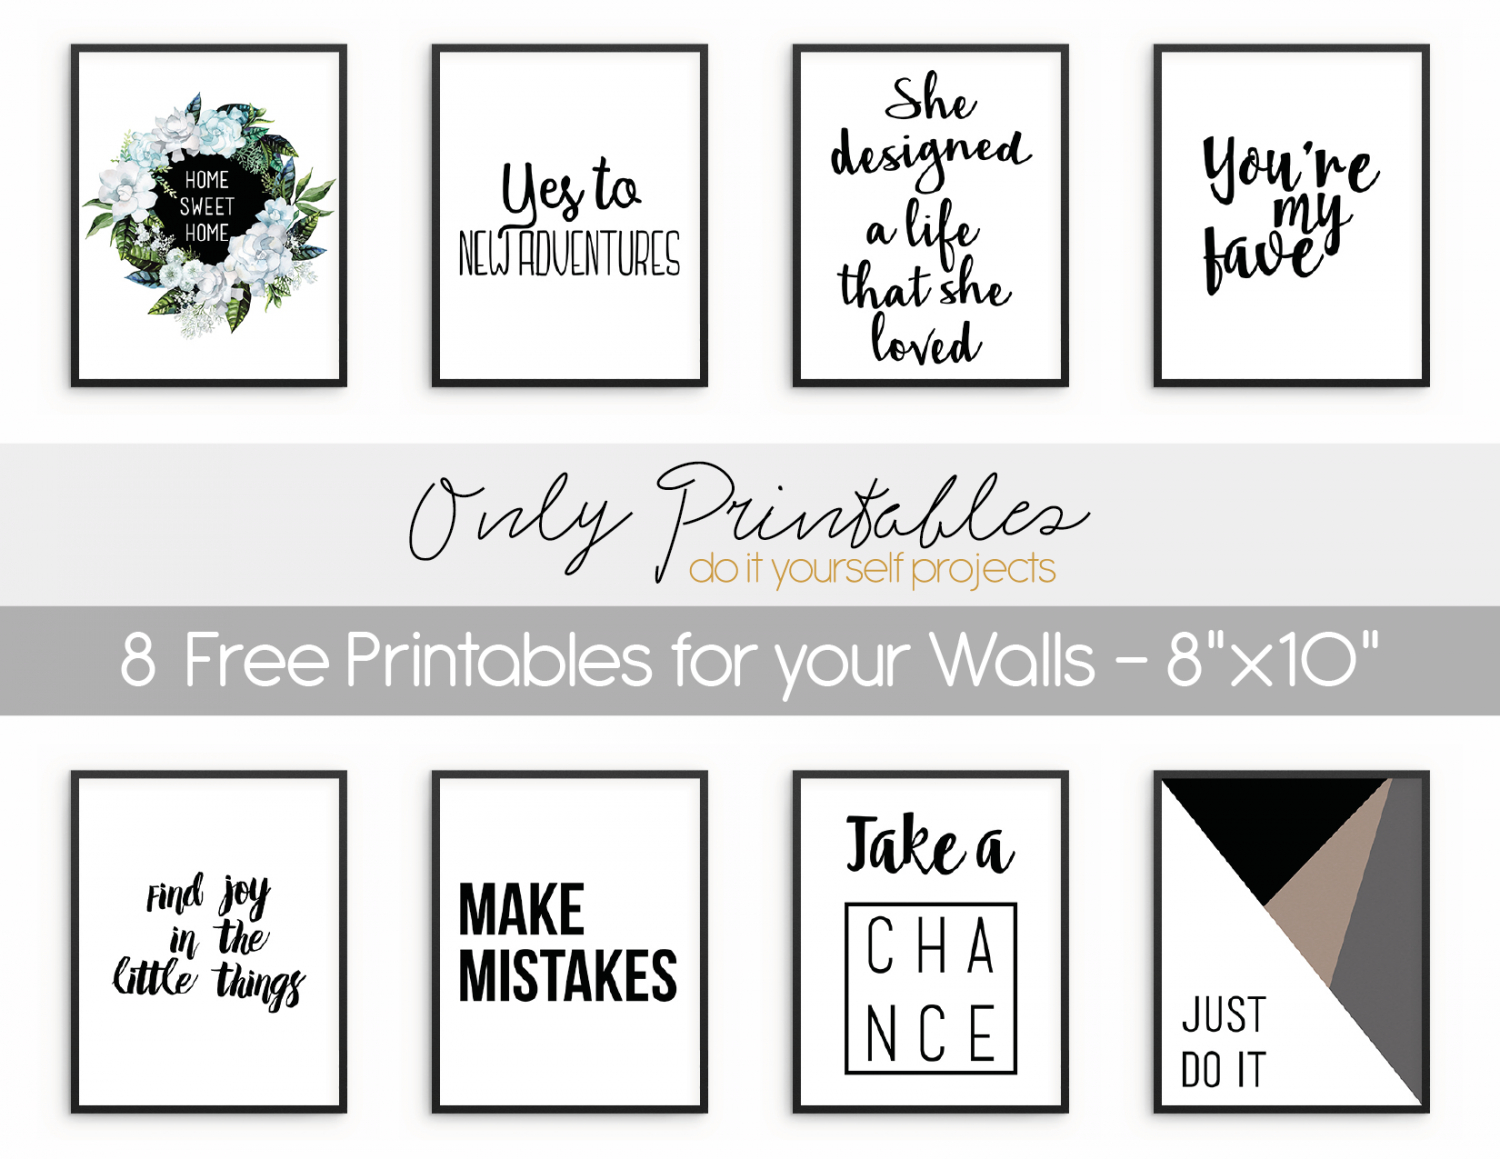 Only Printables | 8 Free Printables For Your Walls - Free Printable Wall Art